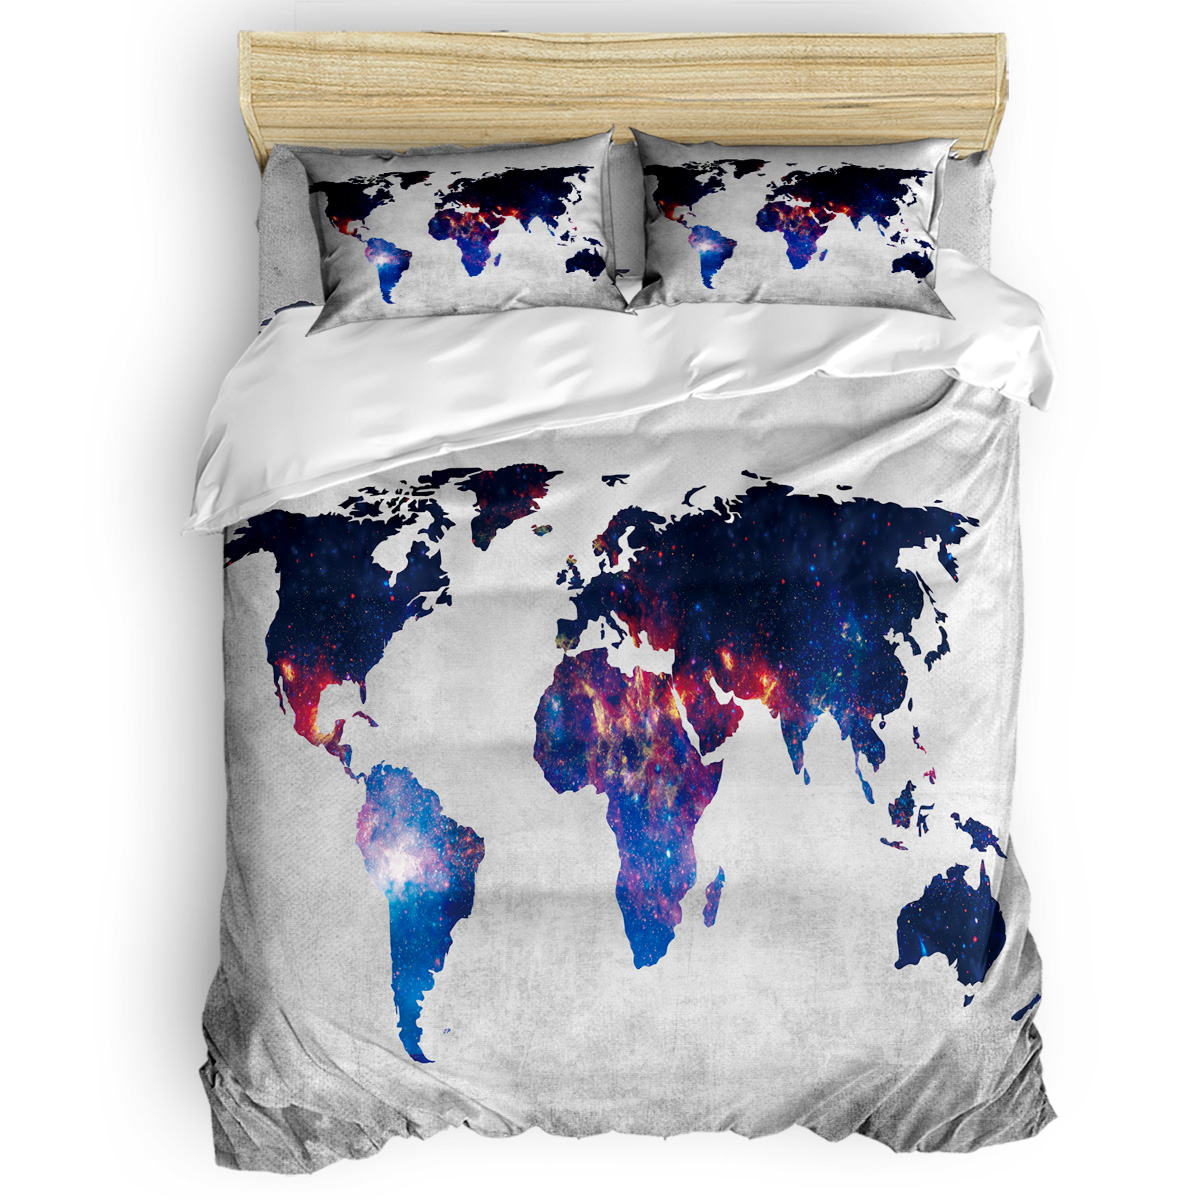 Fancy 3D Printed World Map Design Queen <strong>Size</strong> 4 Pieces Comforter <strong>Sets</strong> for <strong>Bed</strong>